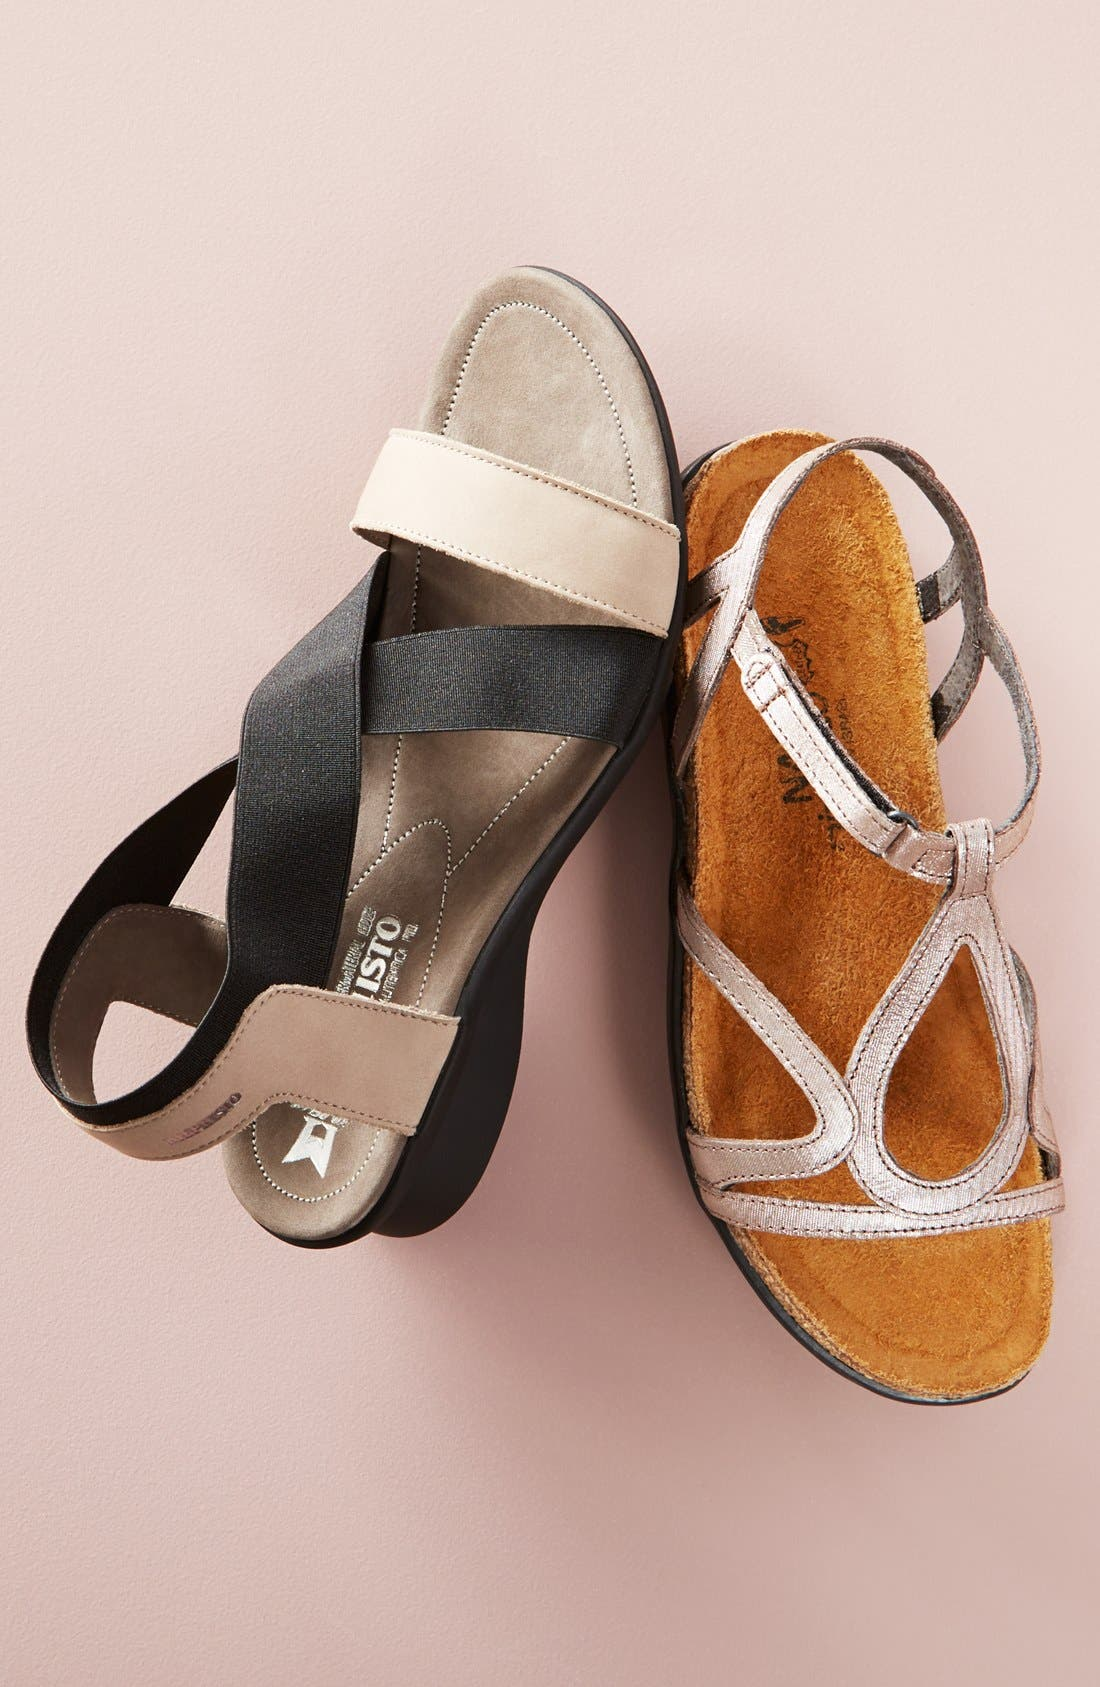 'Pastora' Sandal,                             Alternate thumbnail 5, color,                             002